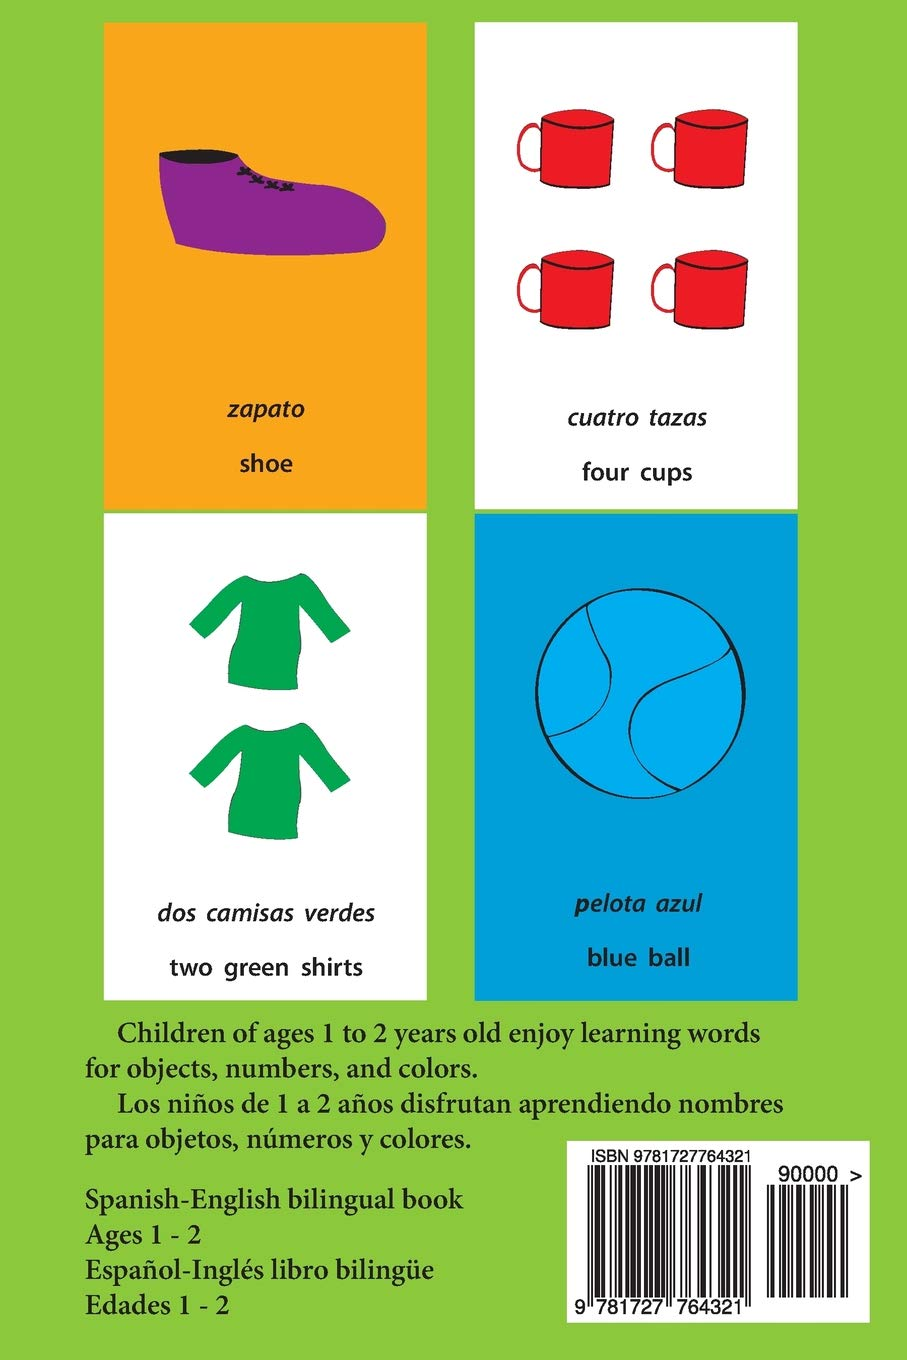 Amazon.com: Words Numbers Colors ~ Palabras Numeros Colores (9781727764321): Charles Harriman, Ahwren Ayers: Books